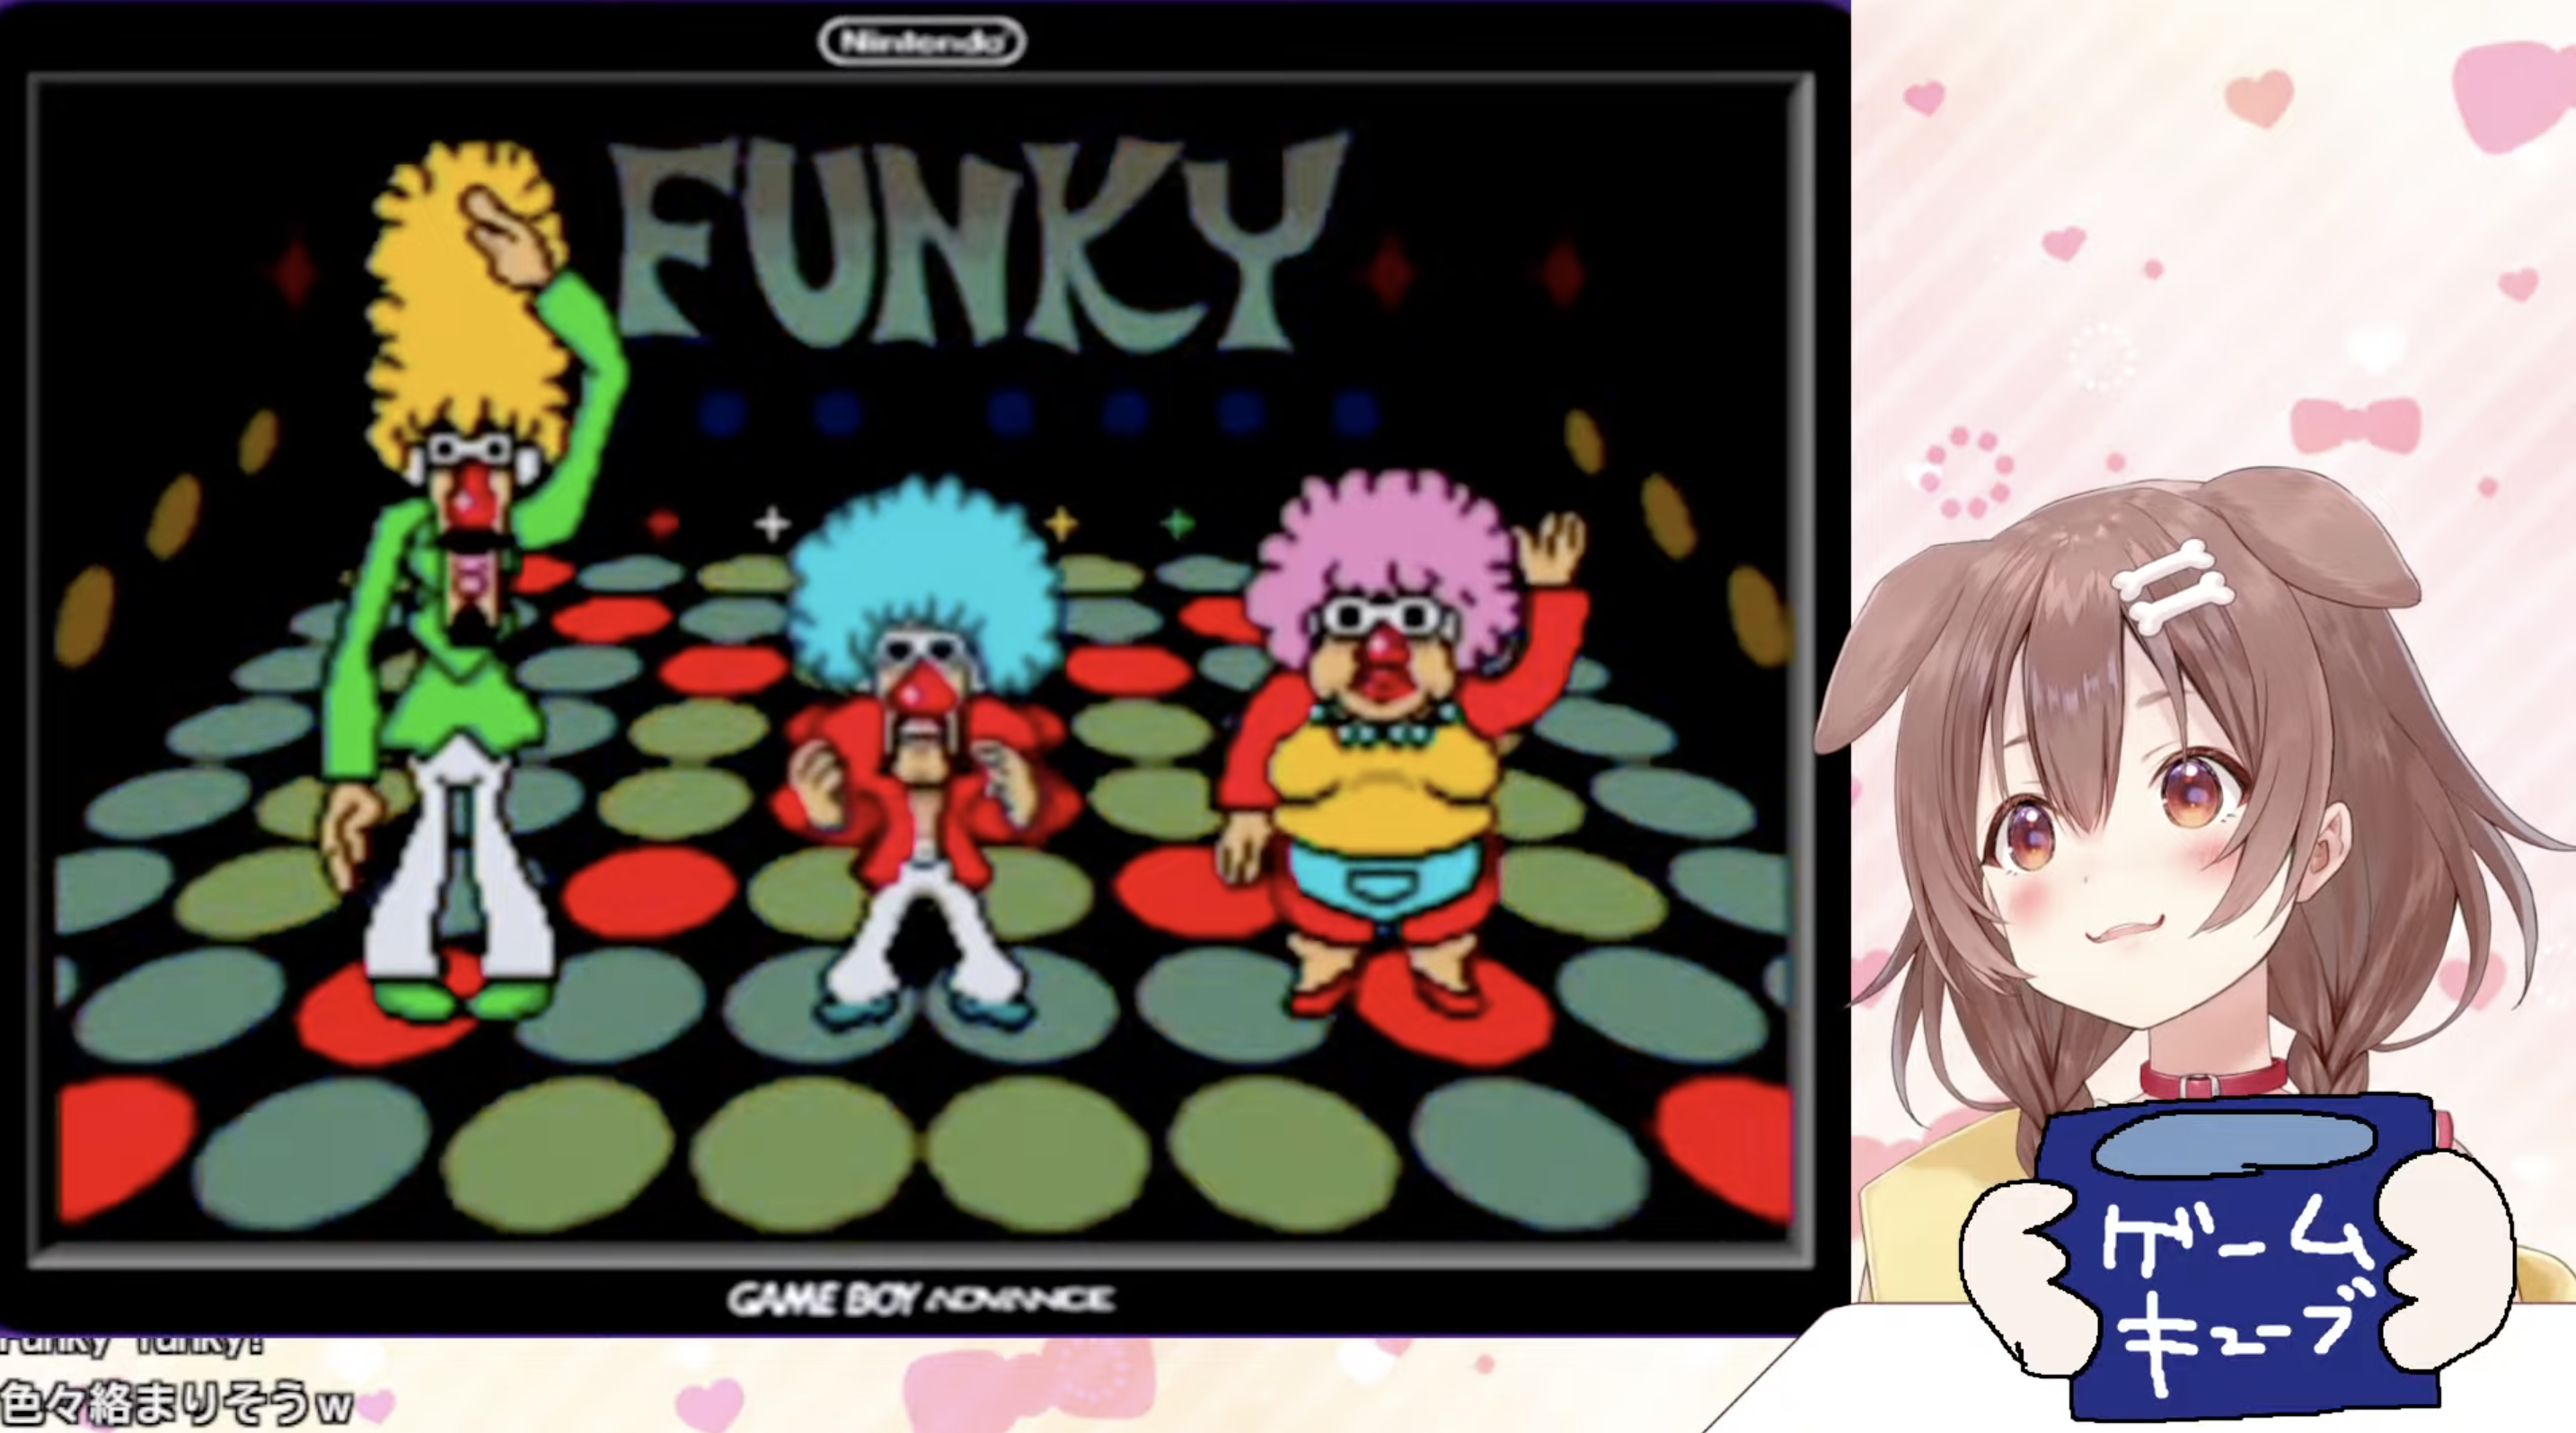 Korone, the Vtuber playing WarioWare: Twisted. The mini game is a dancing mini game and we see little cartoon characters on the dance floor. Under Korone a little GameCube is drawn in.